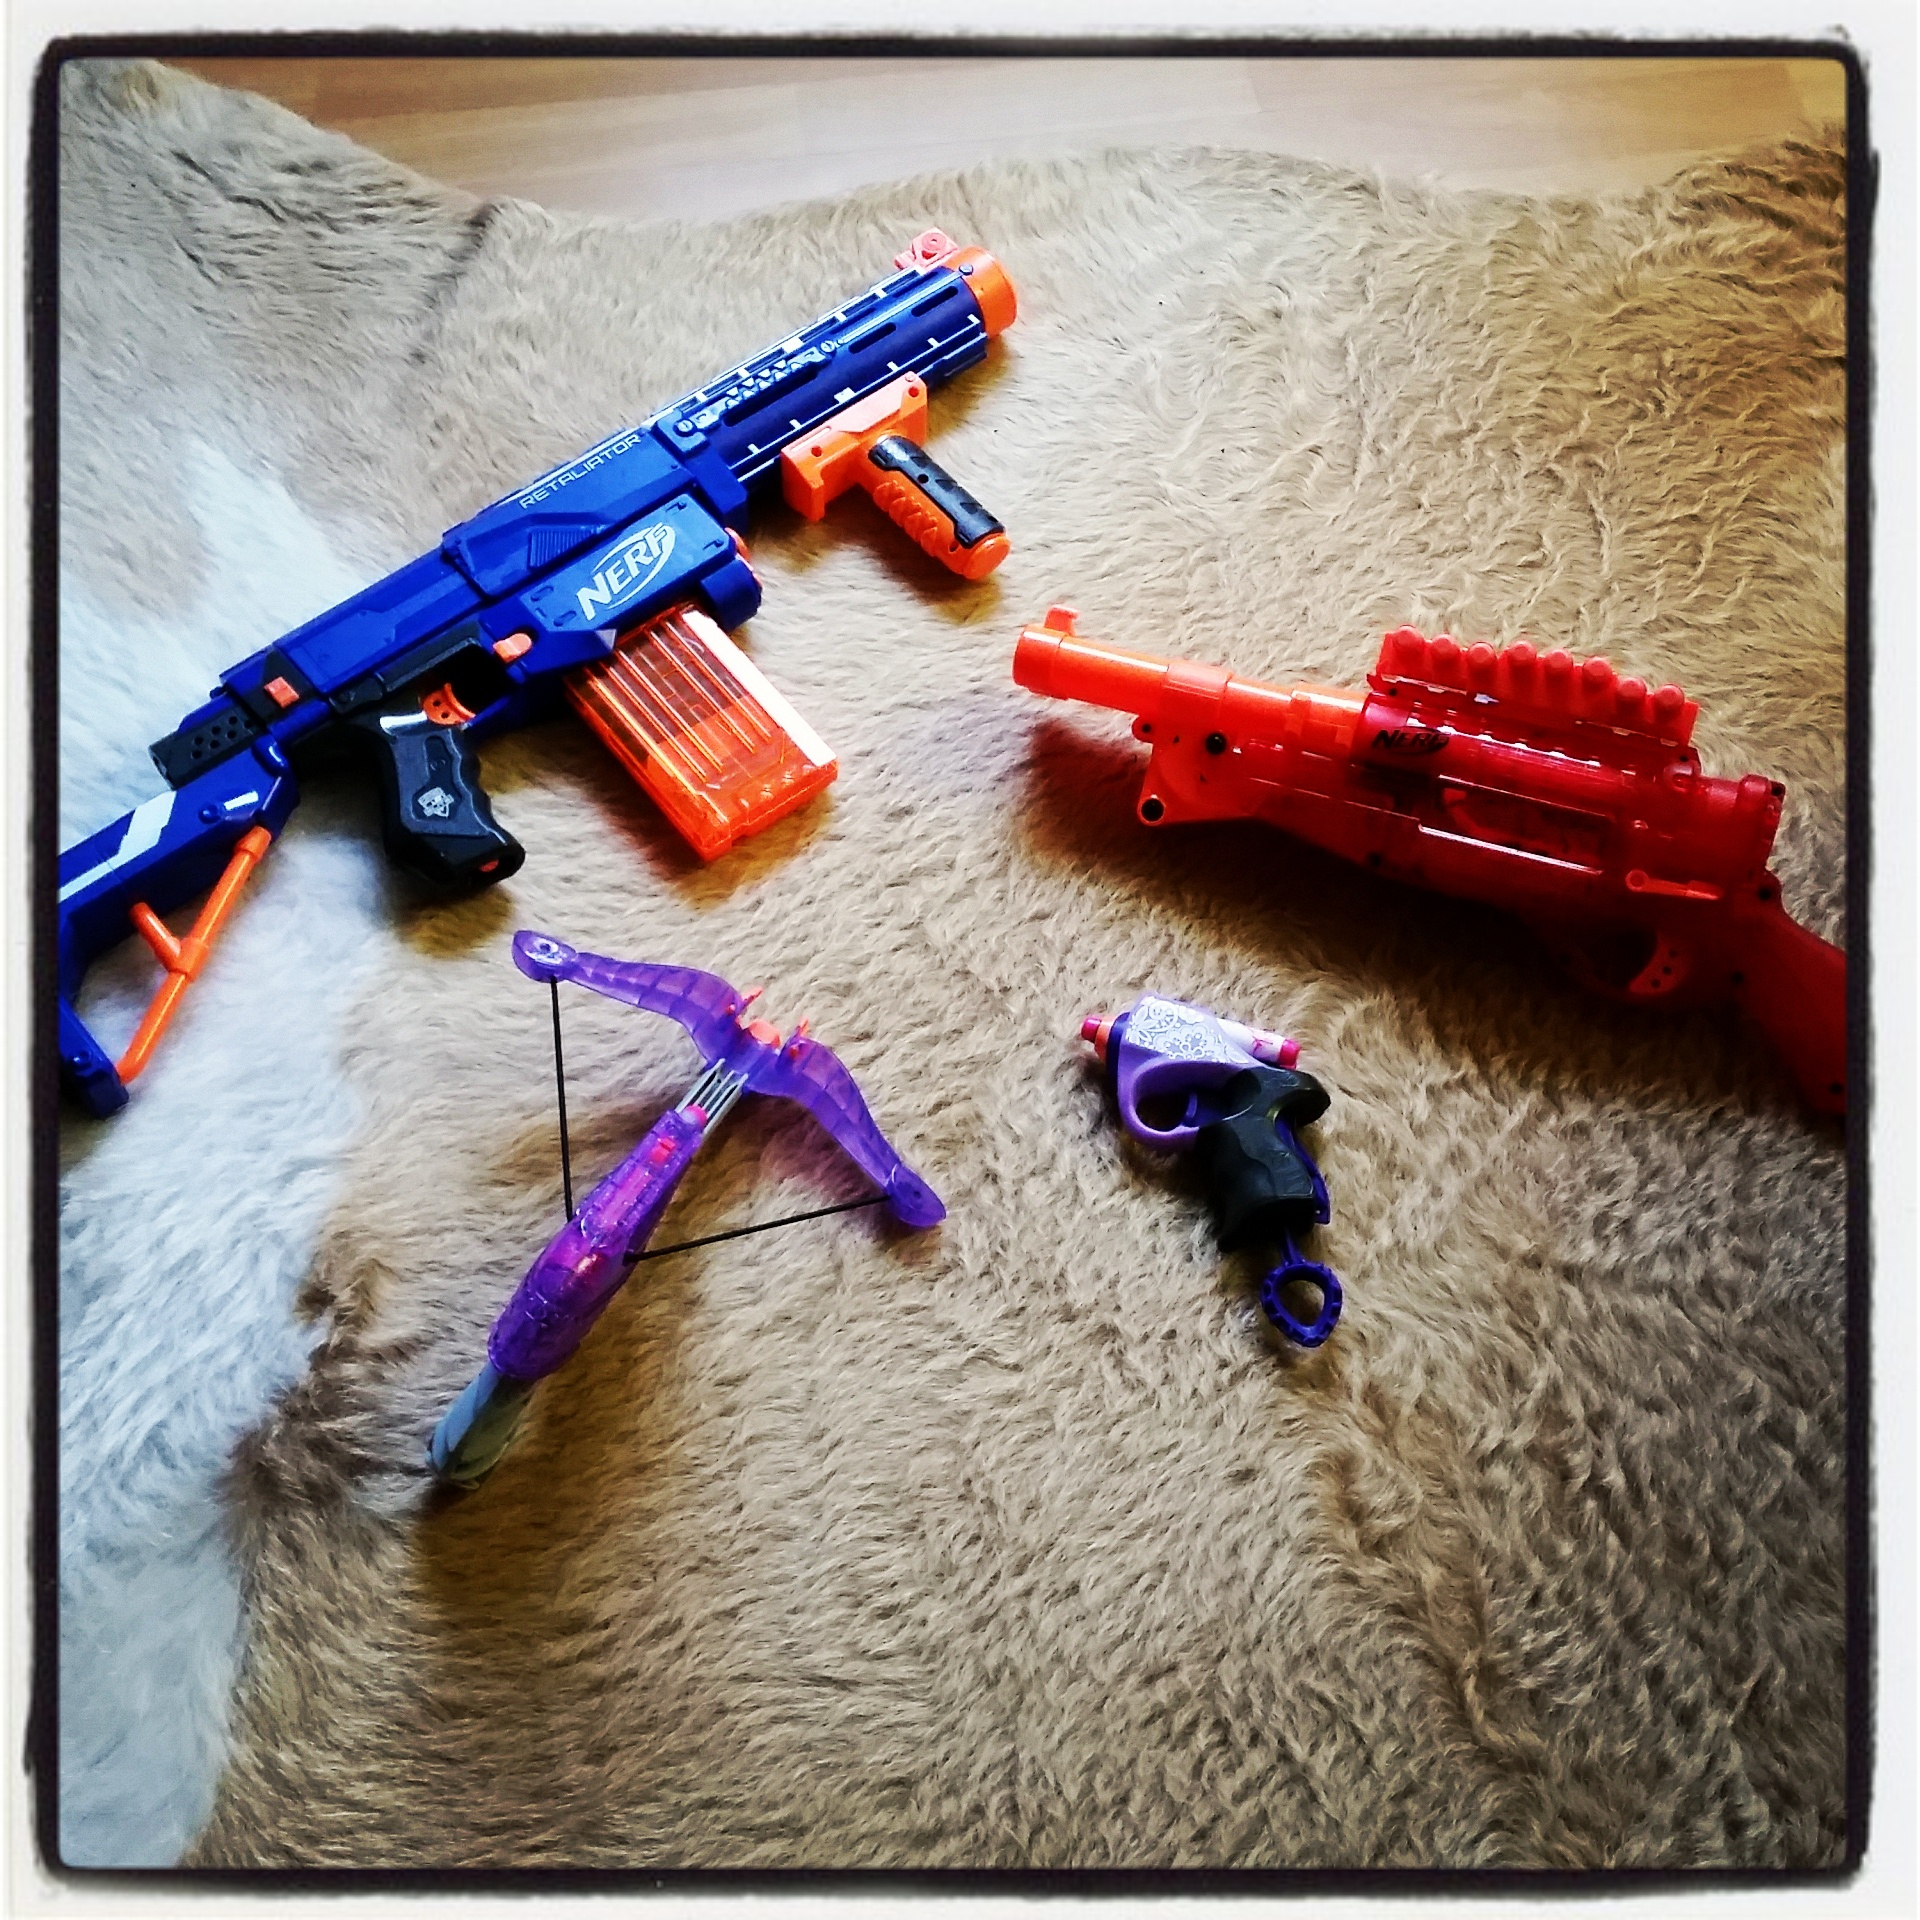 The Nerf family